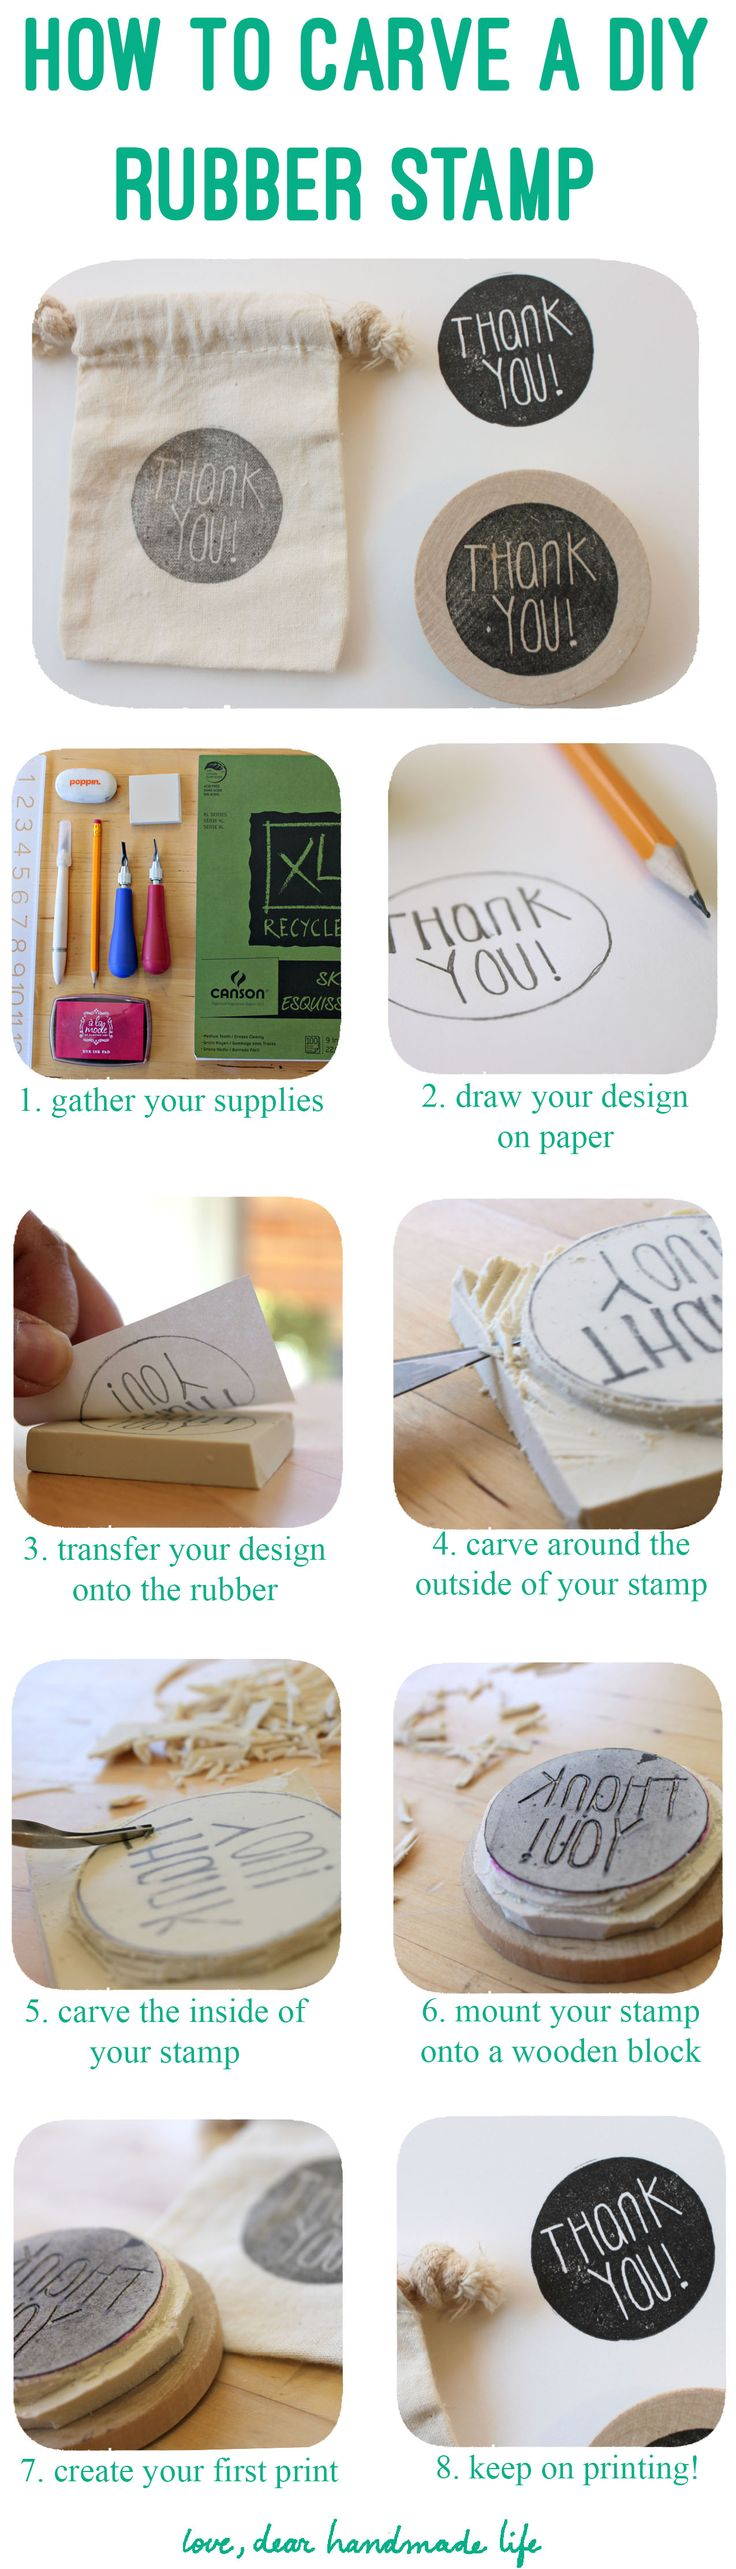 How To Make a DIY Carved Rubber Stamp